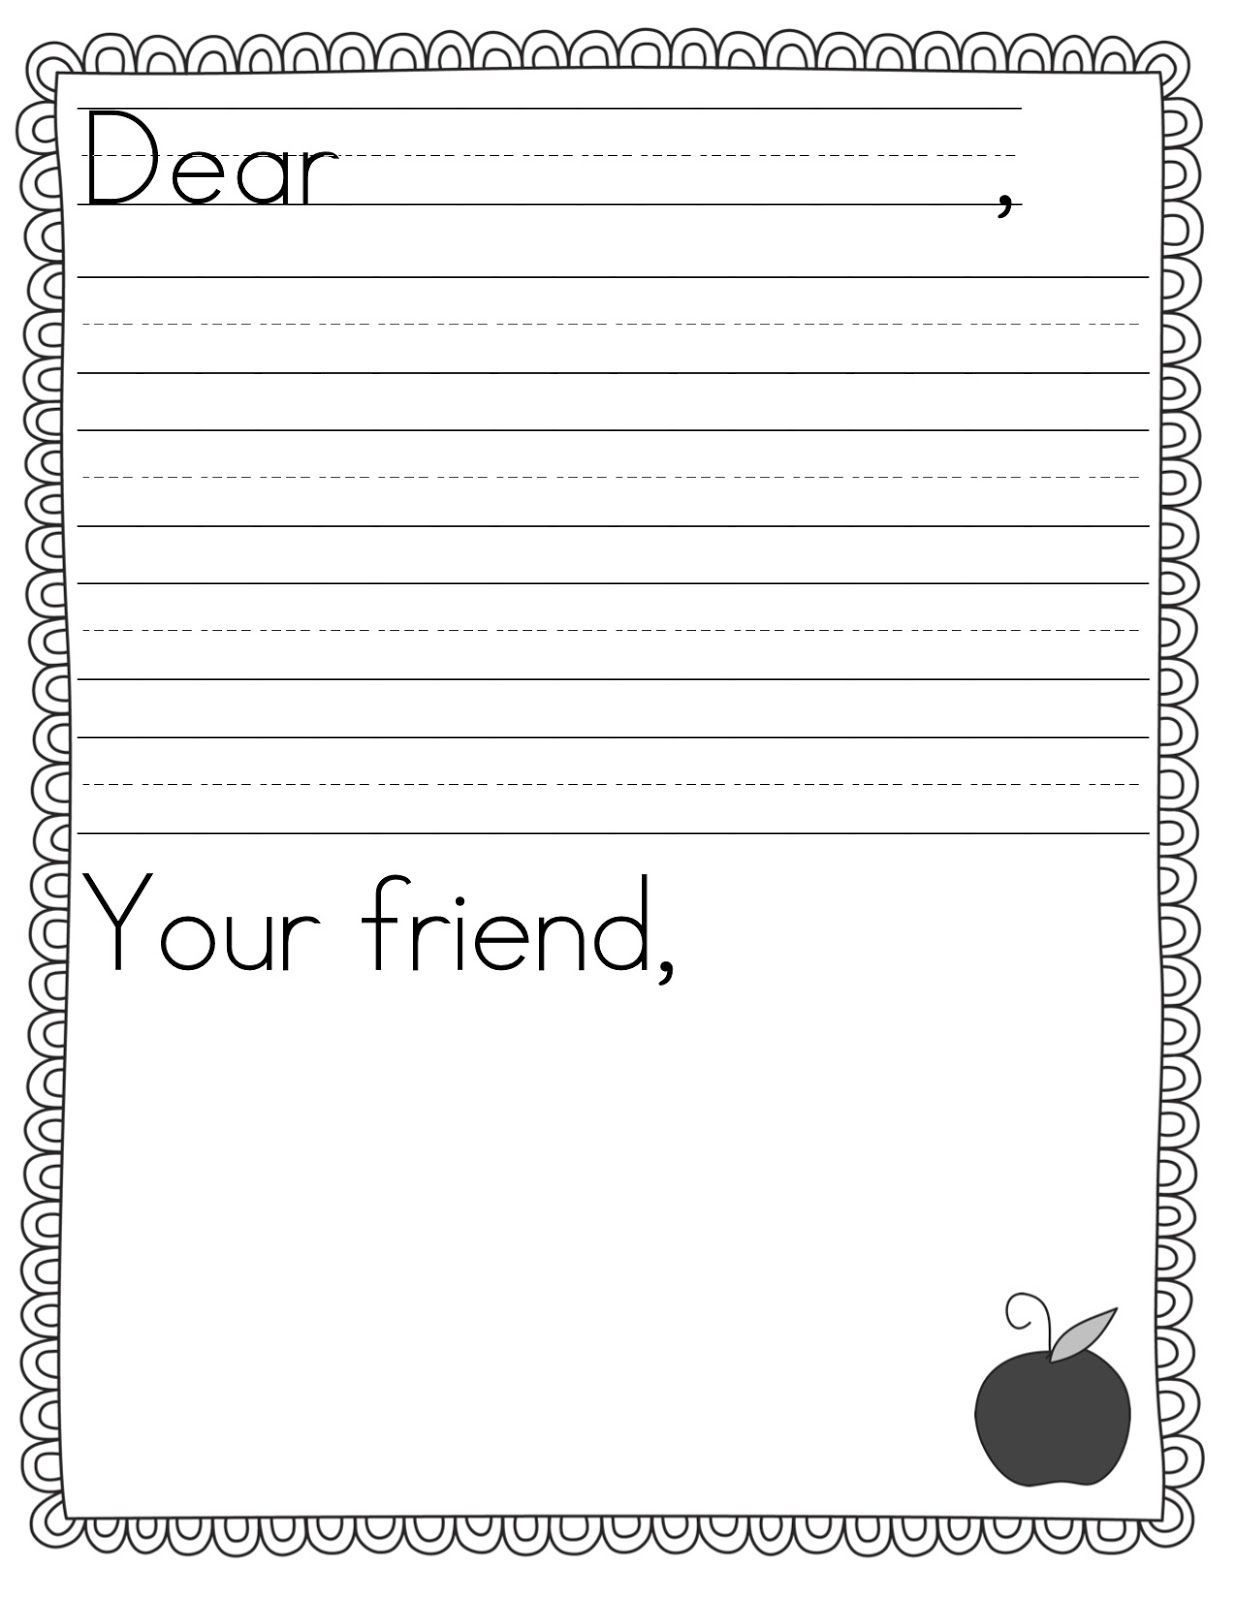 001 Simple Free Letter Writing Template 2nd Grade Image Full